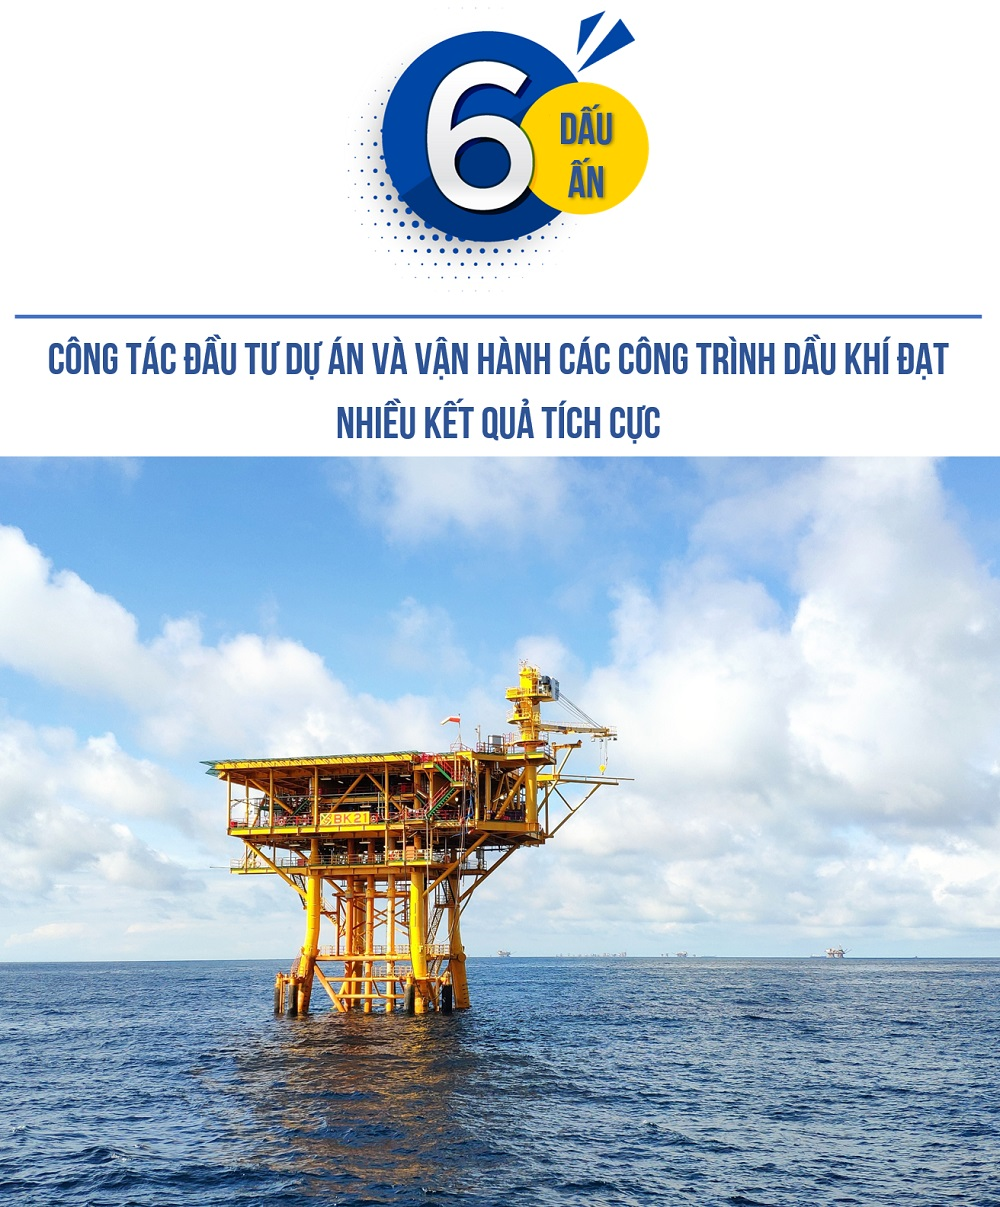 10 outstanding highlights of Petrovietnam in 2020